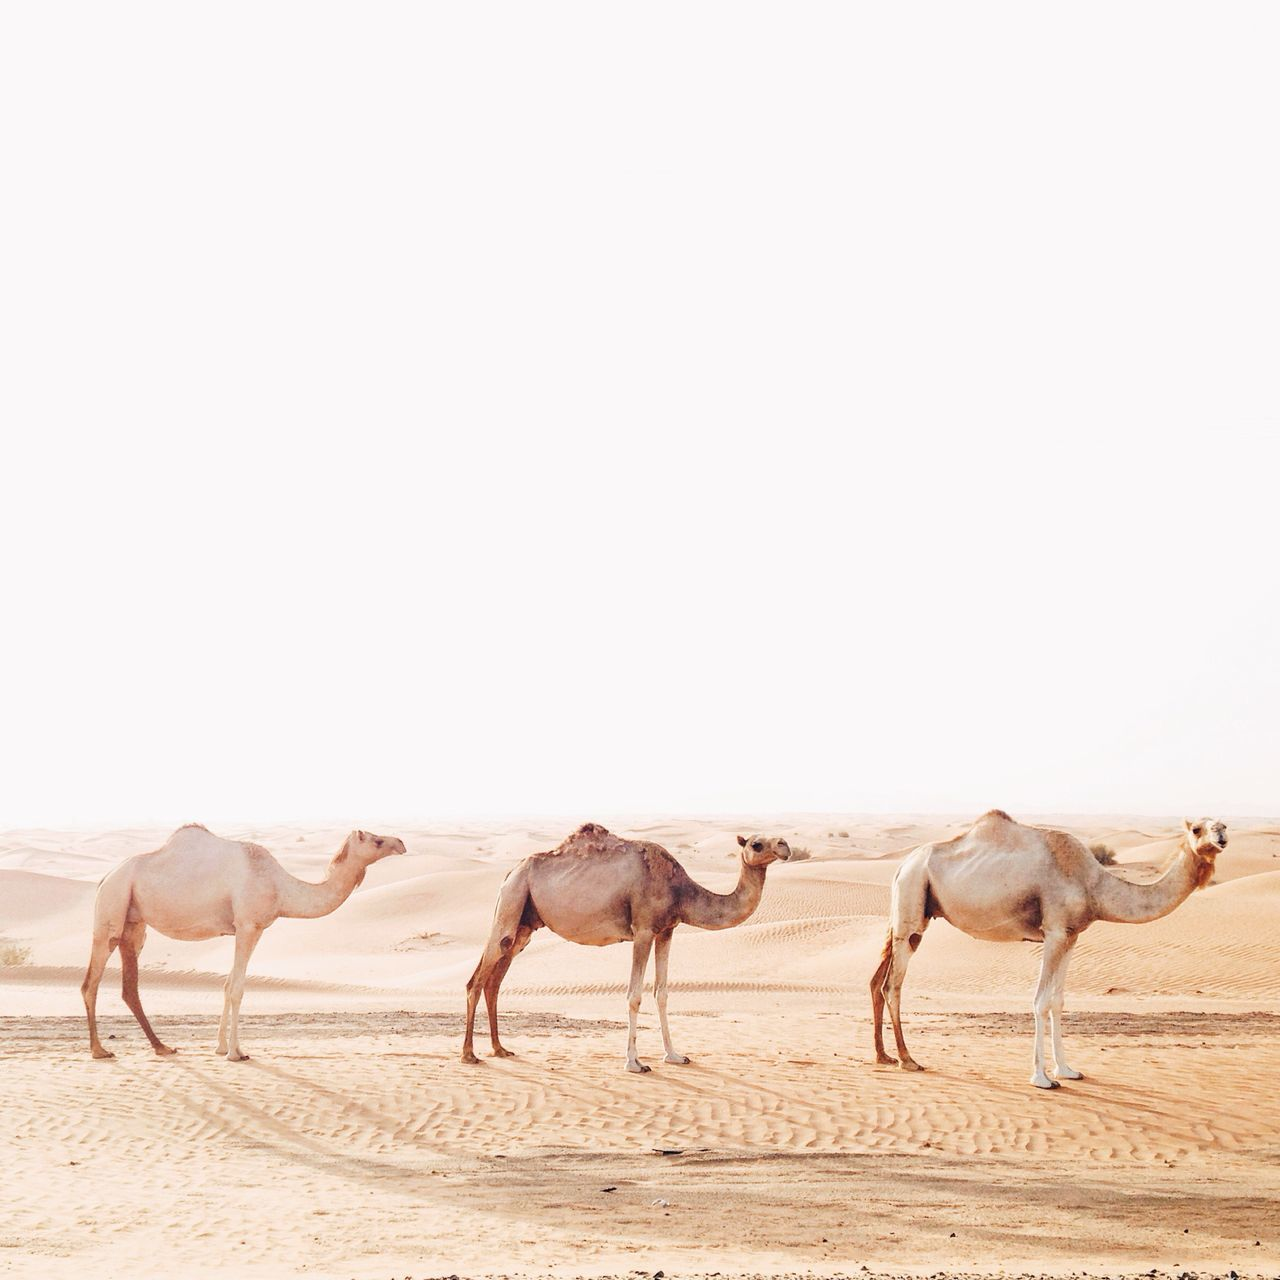 Beautiful stock photos of dubai, animal themes, horse, herbivorous, copy space